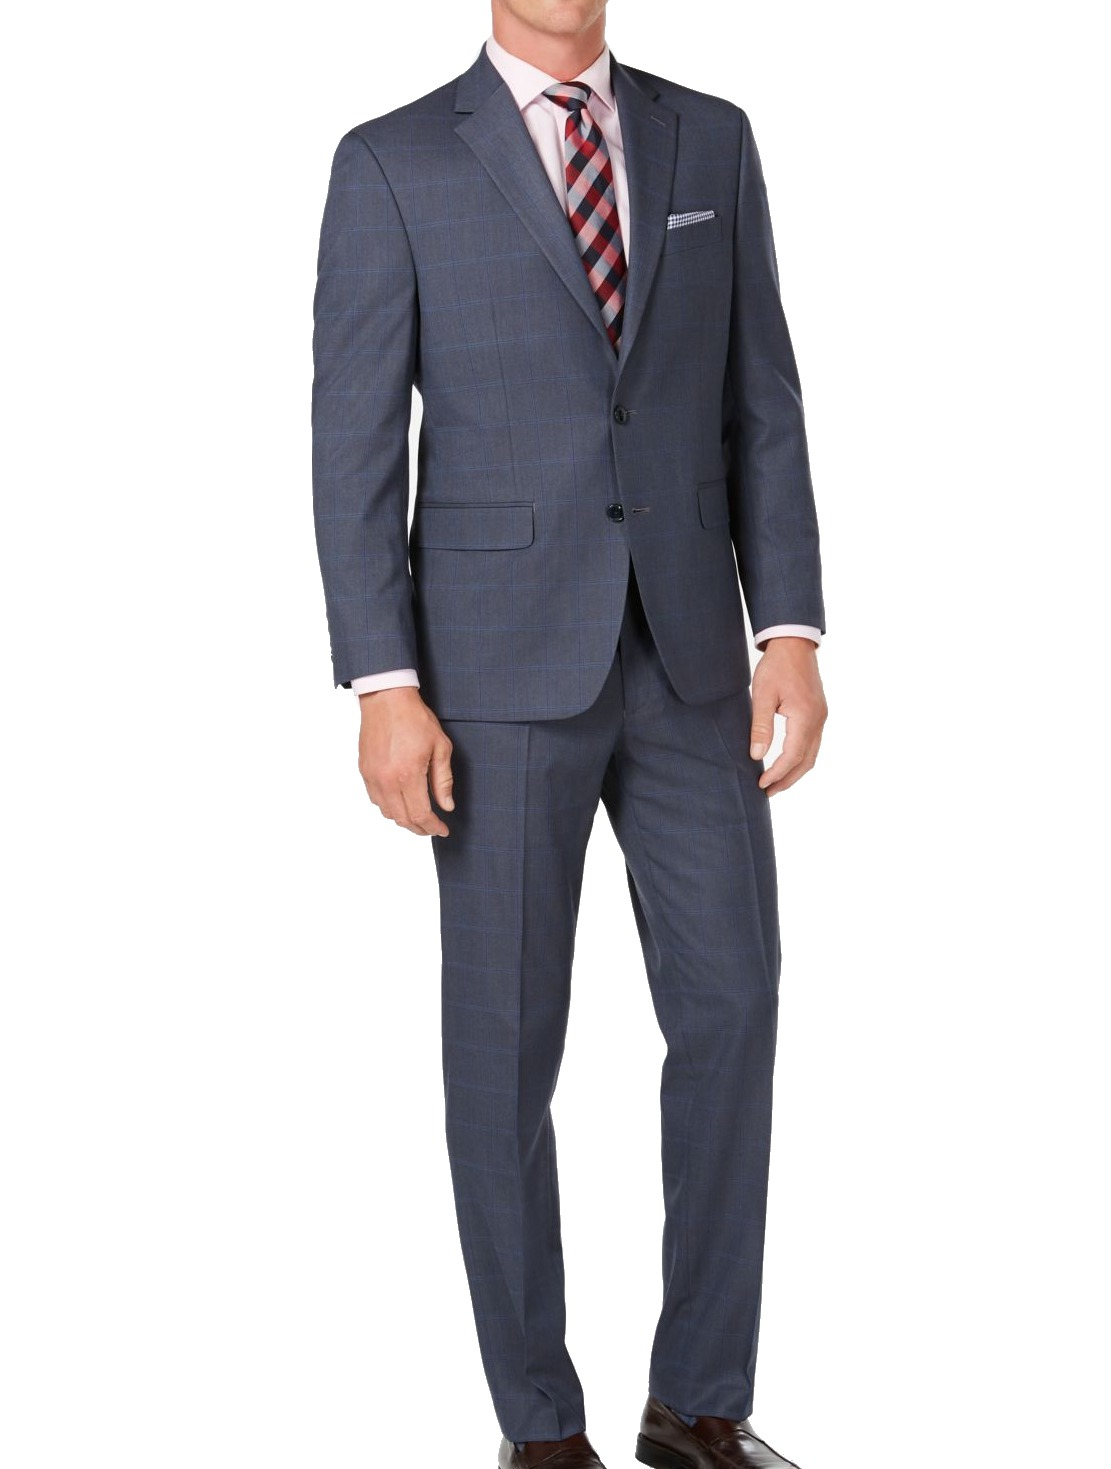 Club Room Mens Suit Blue Size 42 Windowpane Classic Fit 2 Piece $395 #038